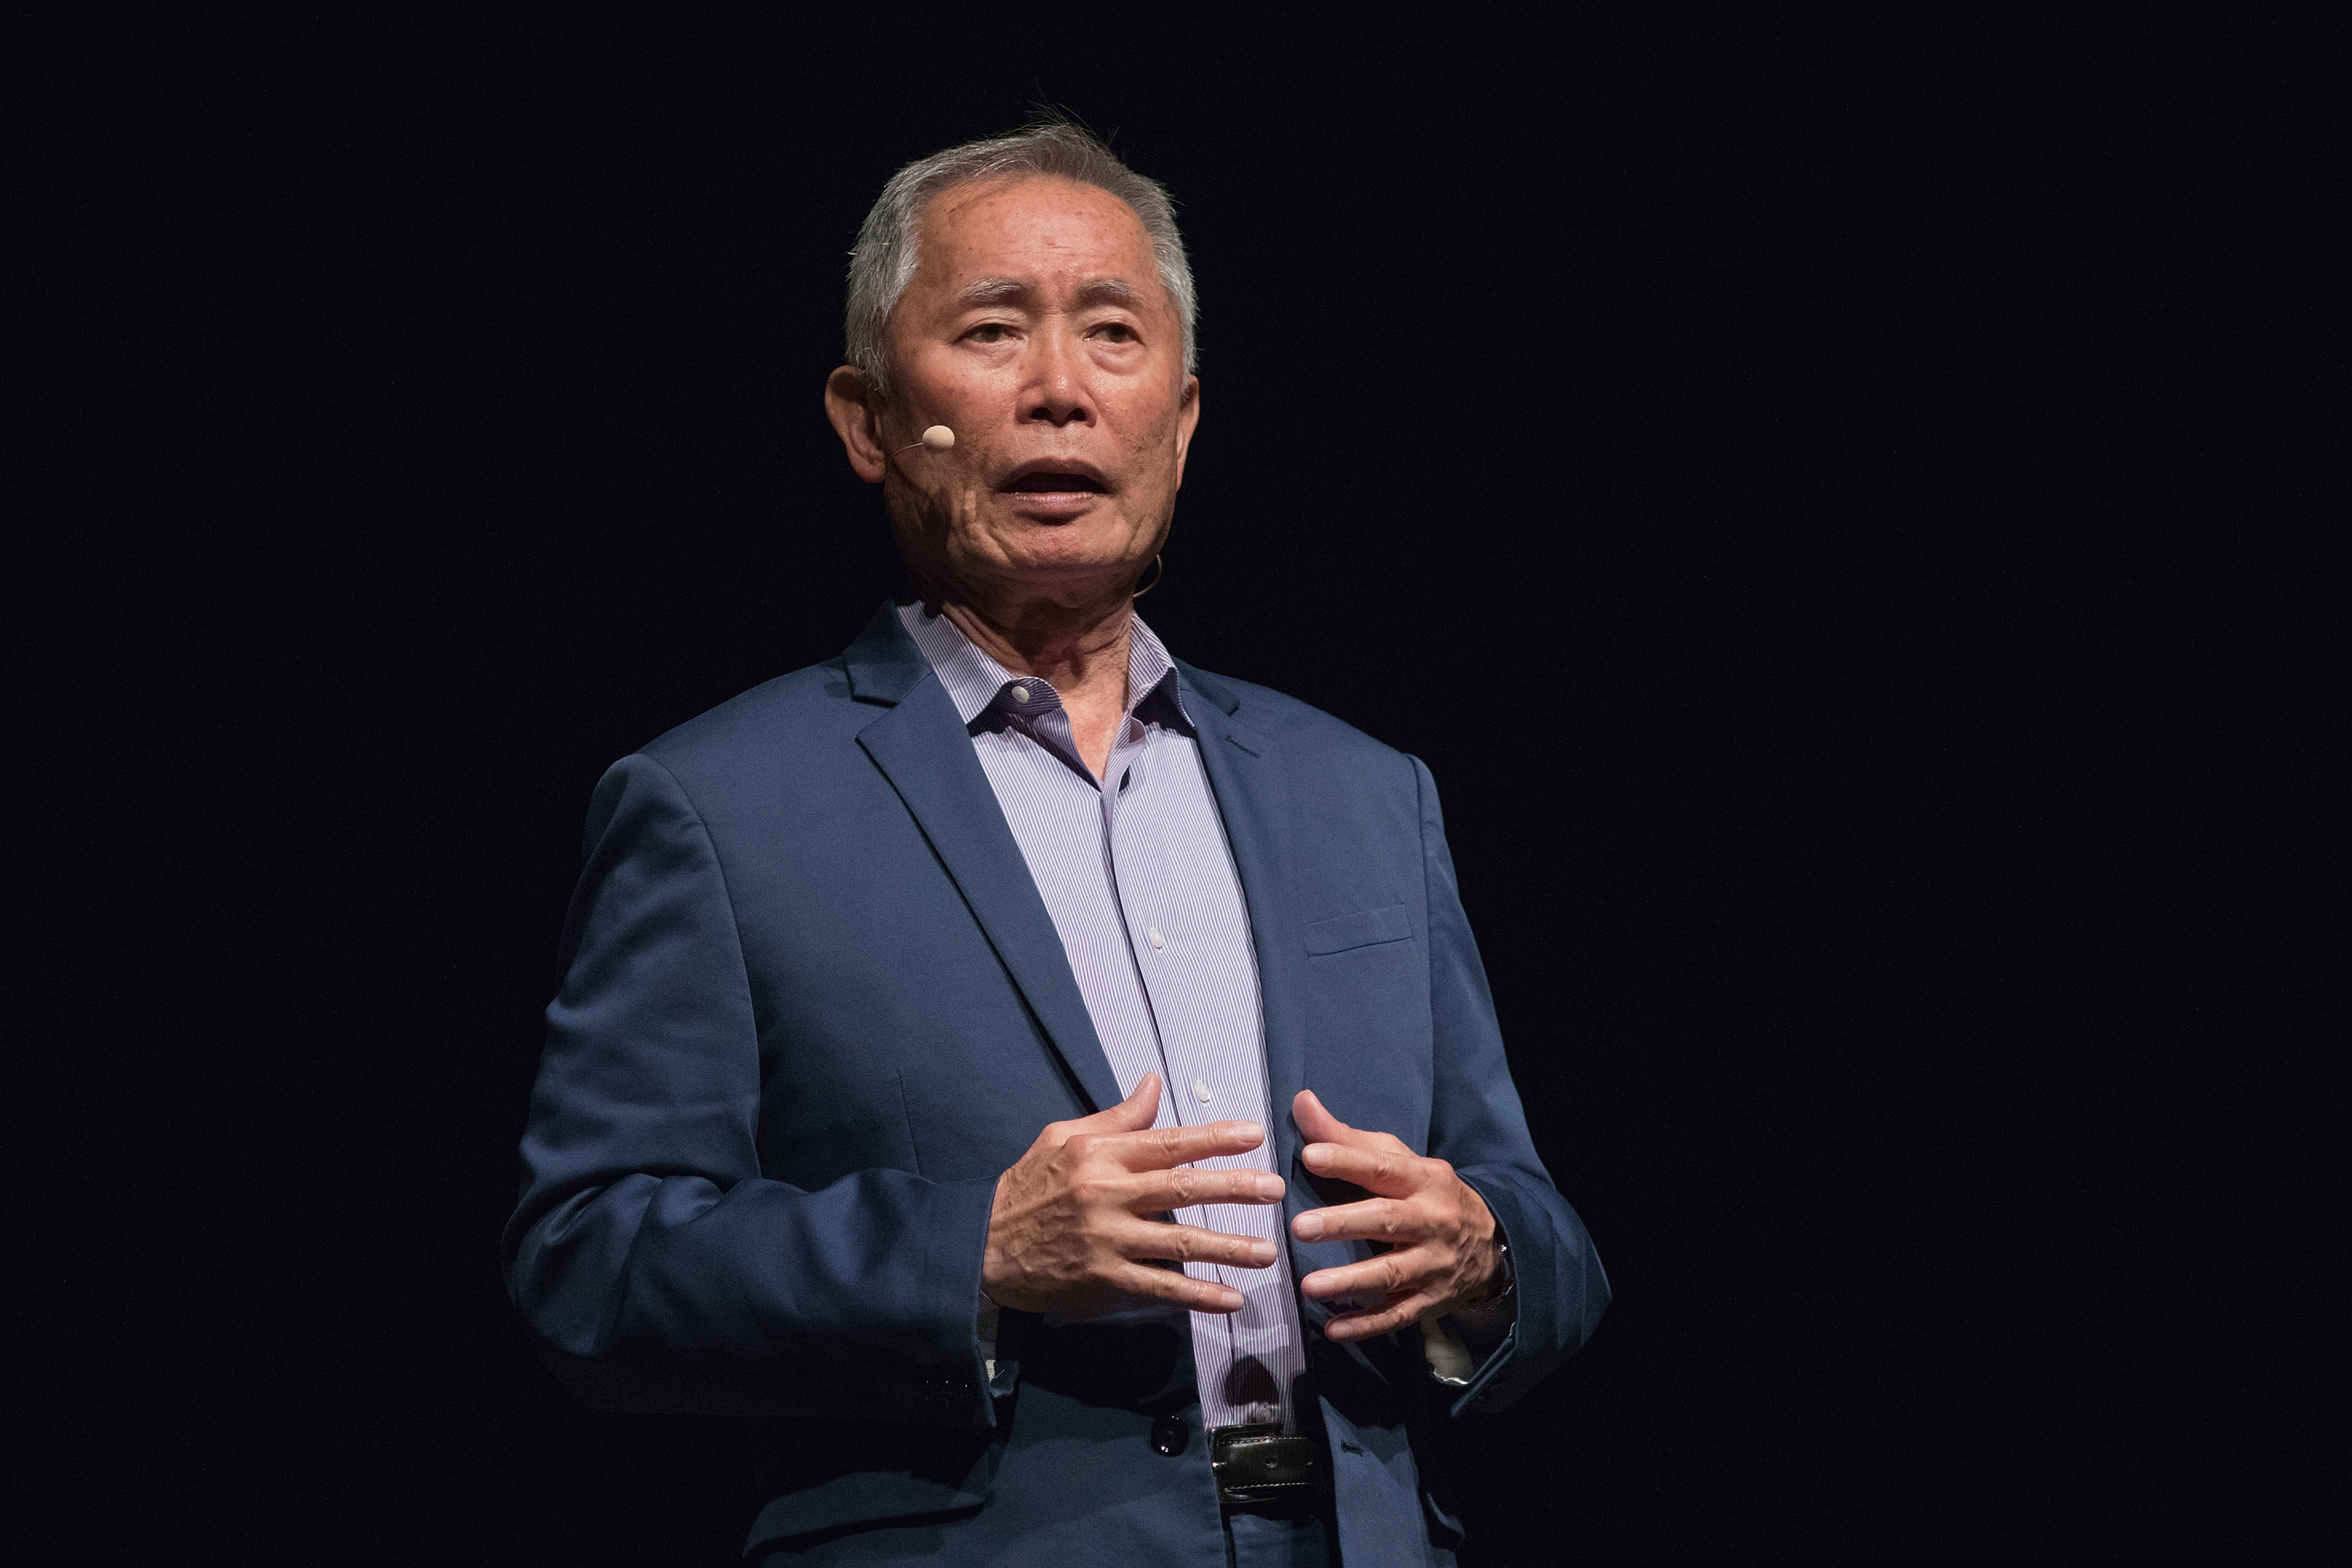 Actor George Takei speaks onstage during 'An Evening with George Takei' at the Long Center on May 4, 2018 in Austin, Texas.